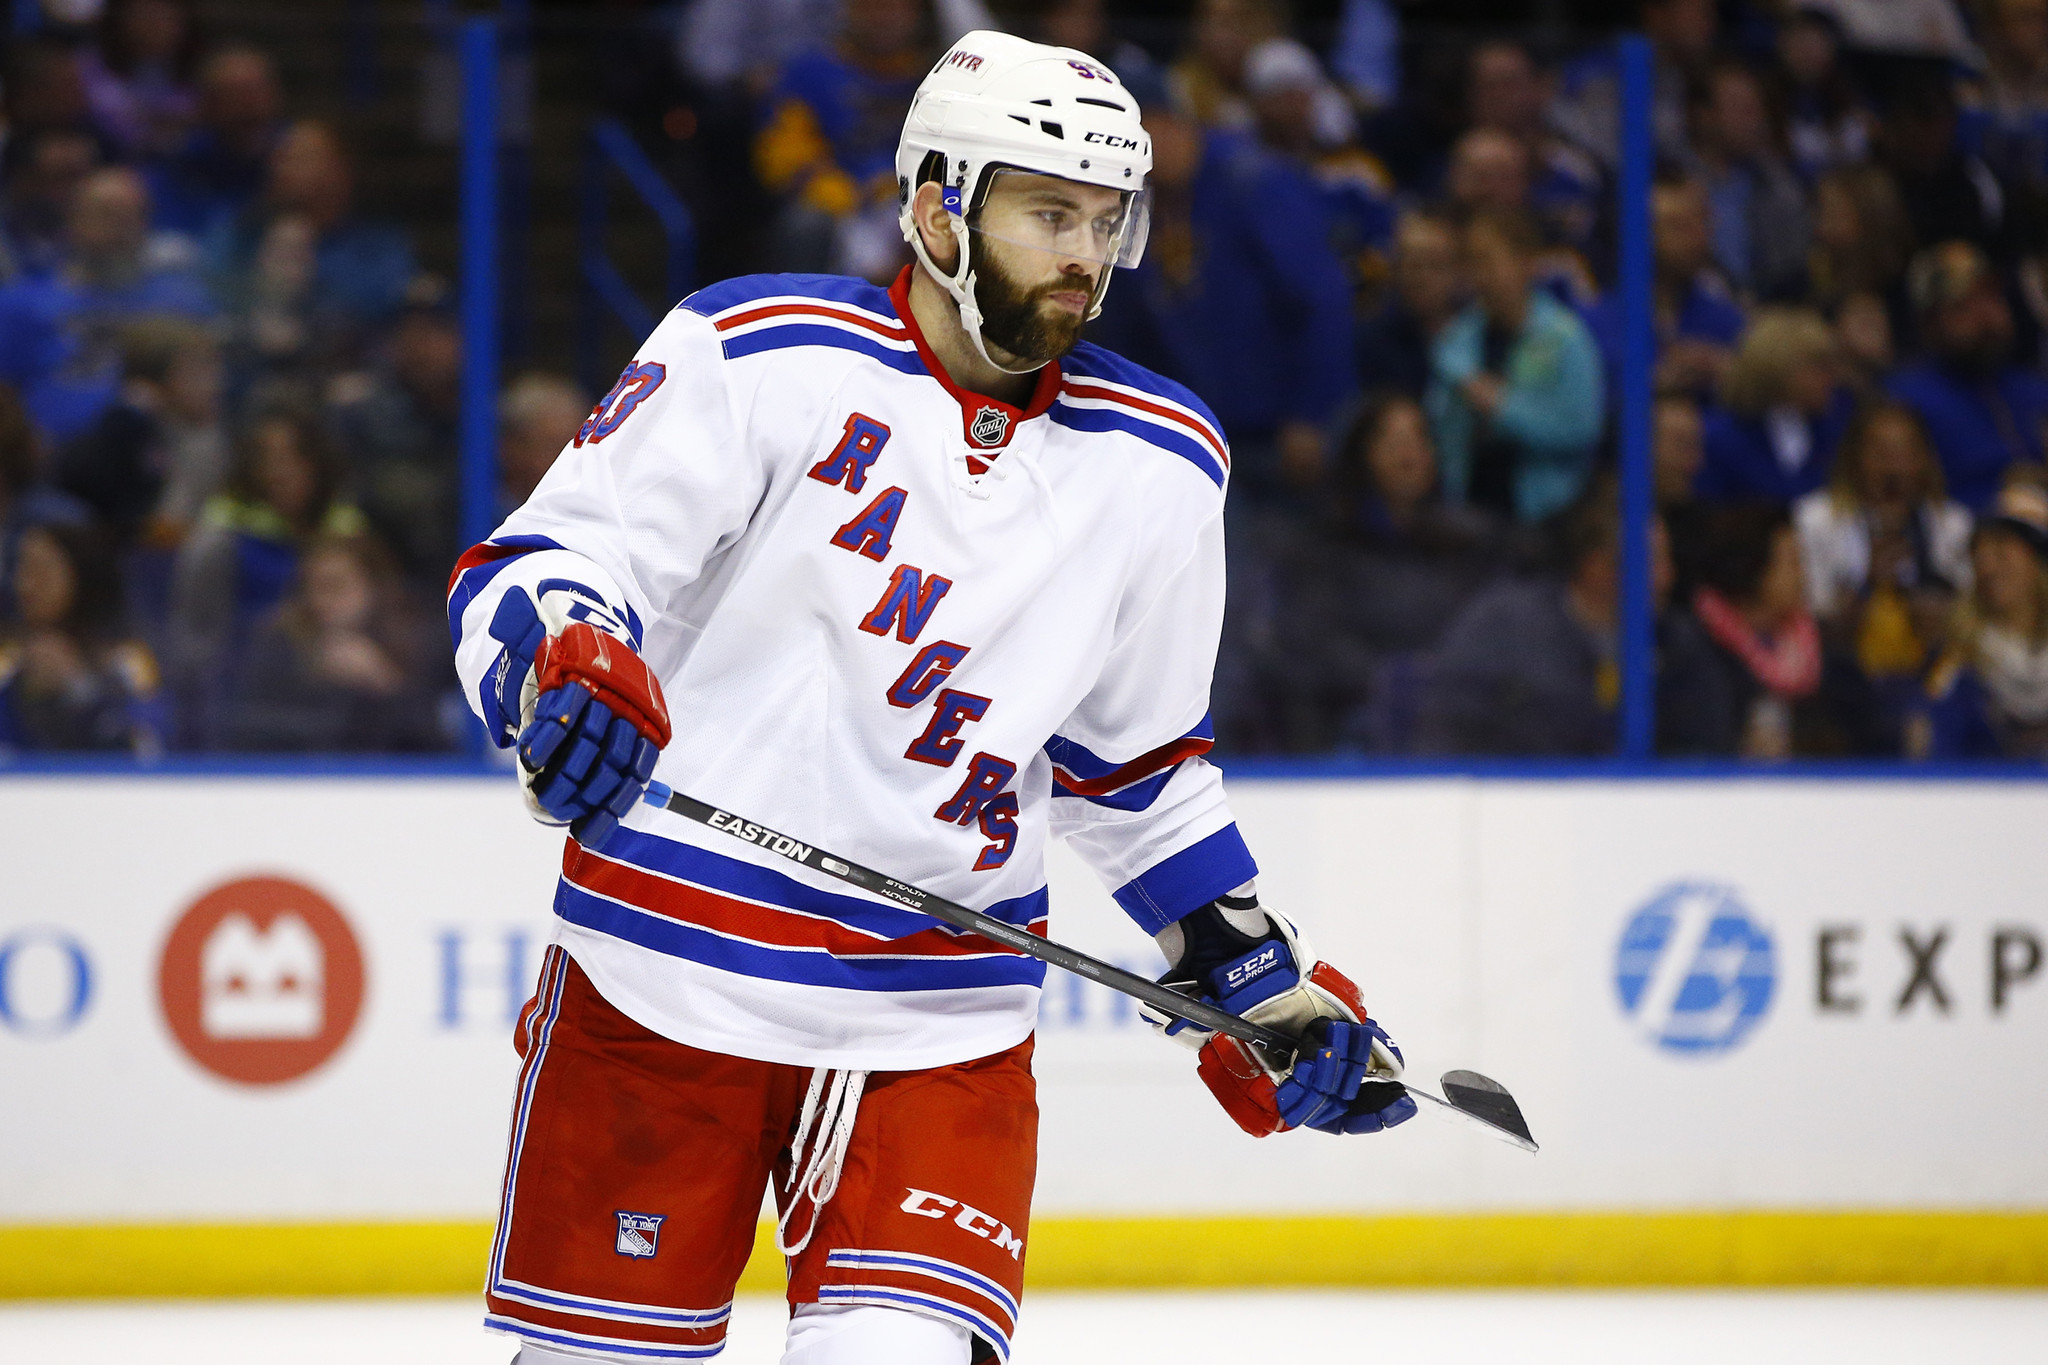 Sfl-panthers-sign-defenseman-keith-yandle-for-44-5-million-over-seven-years-20160622